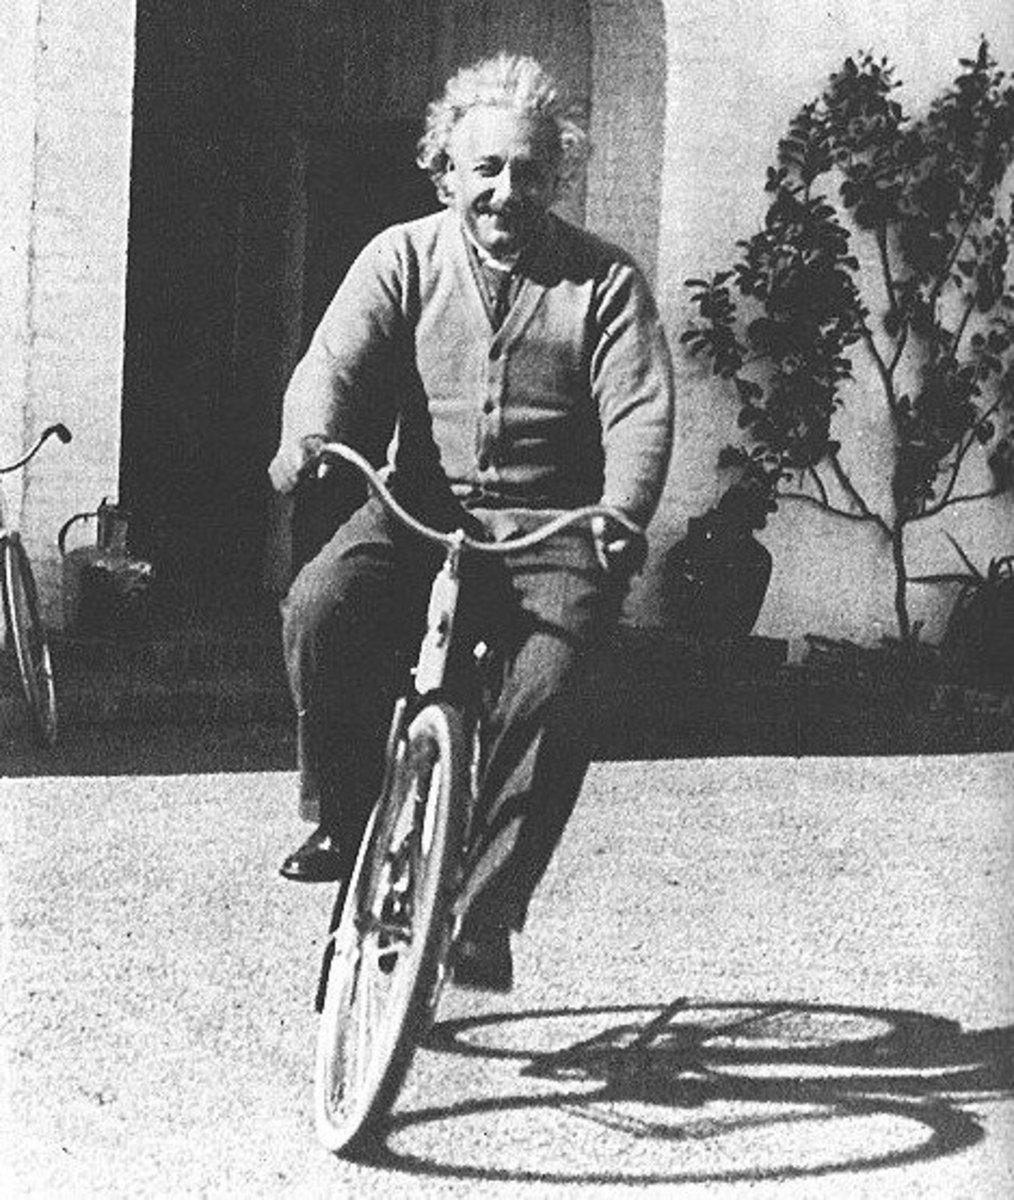 """""""Life is like a bicycle, to keep your balance your must keep on moving."""" —Einstein in a letter to his son"""